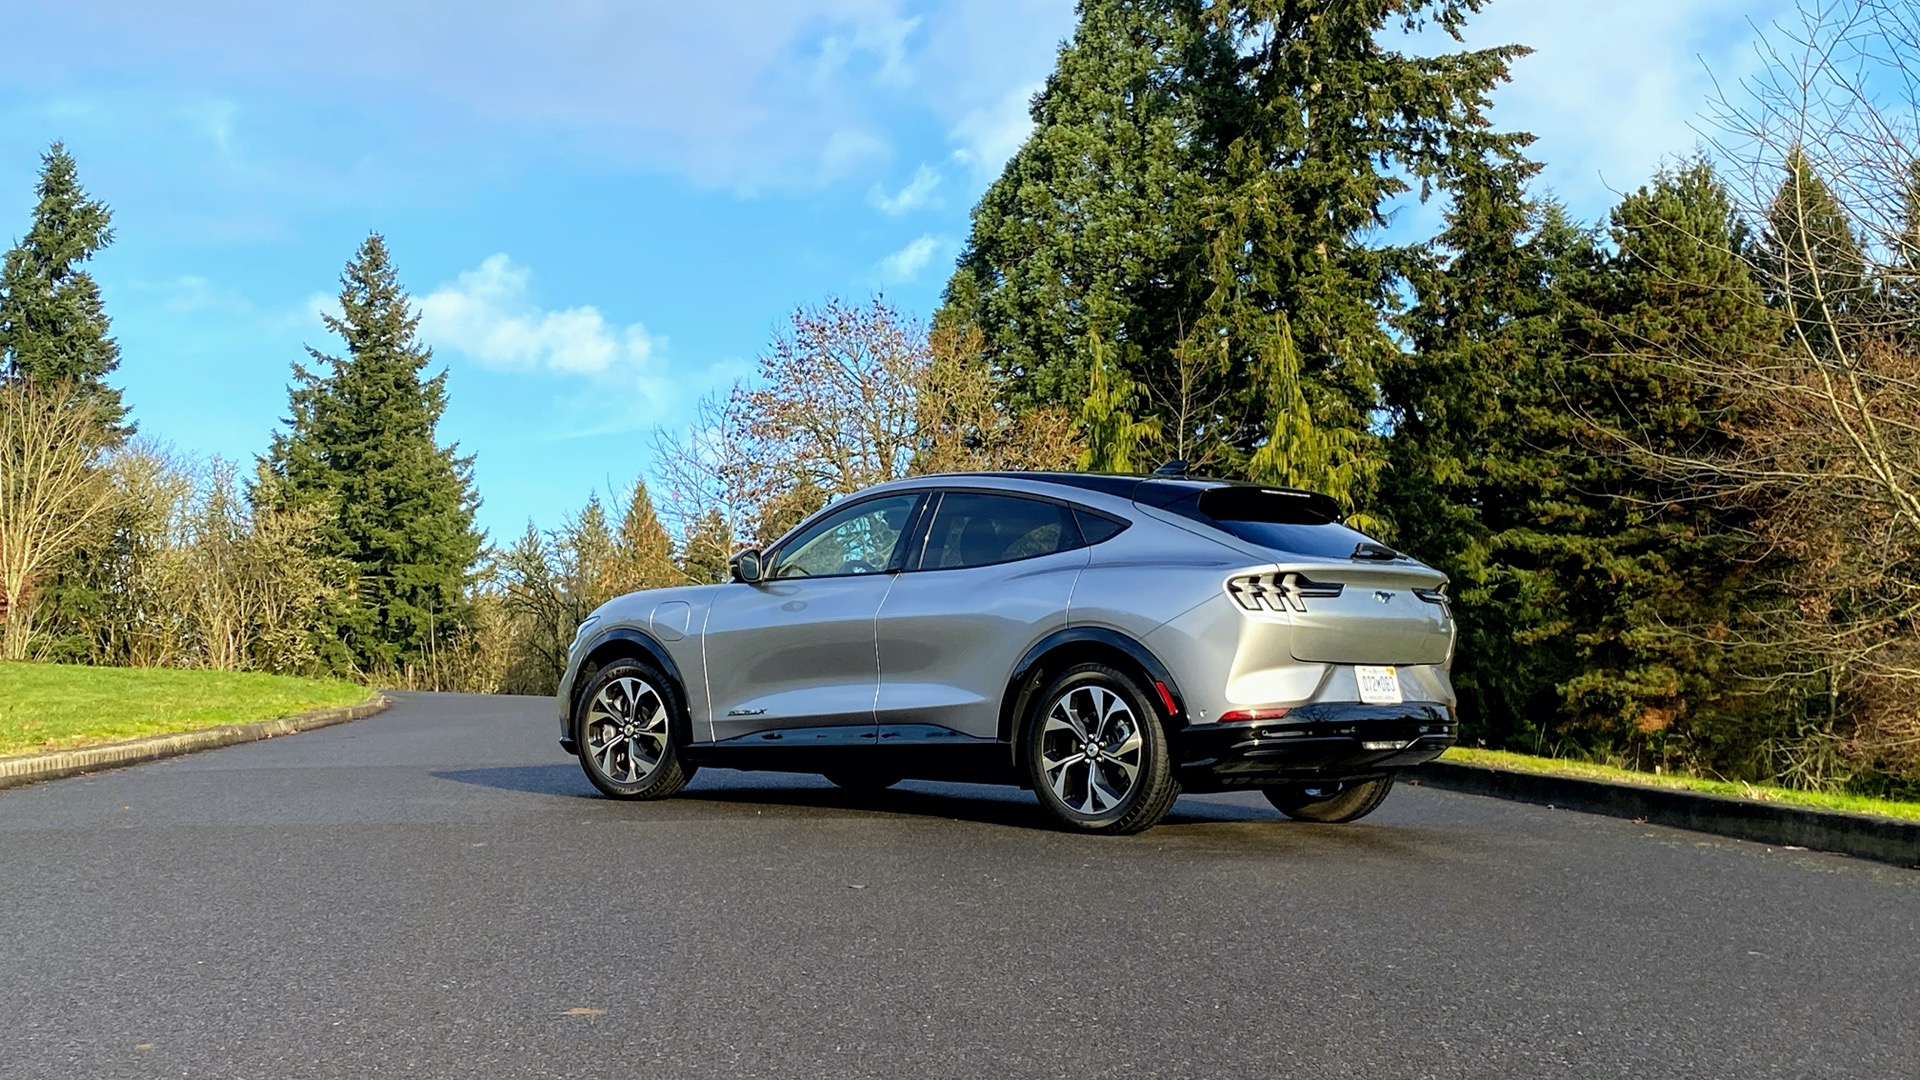 First Drive Review: 2021 Ford Mustang Mach-E electric SUV redefines the pony car